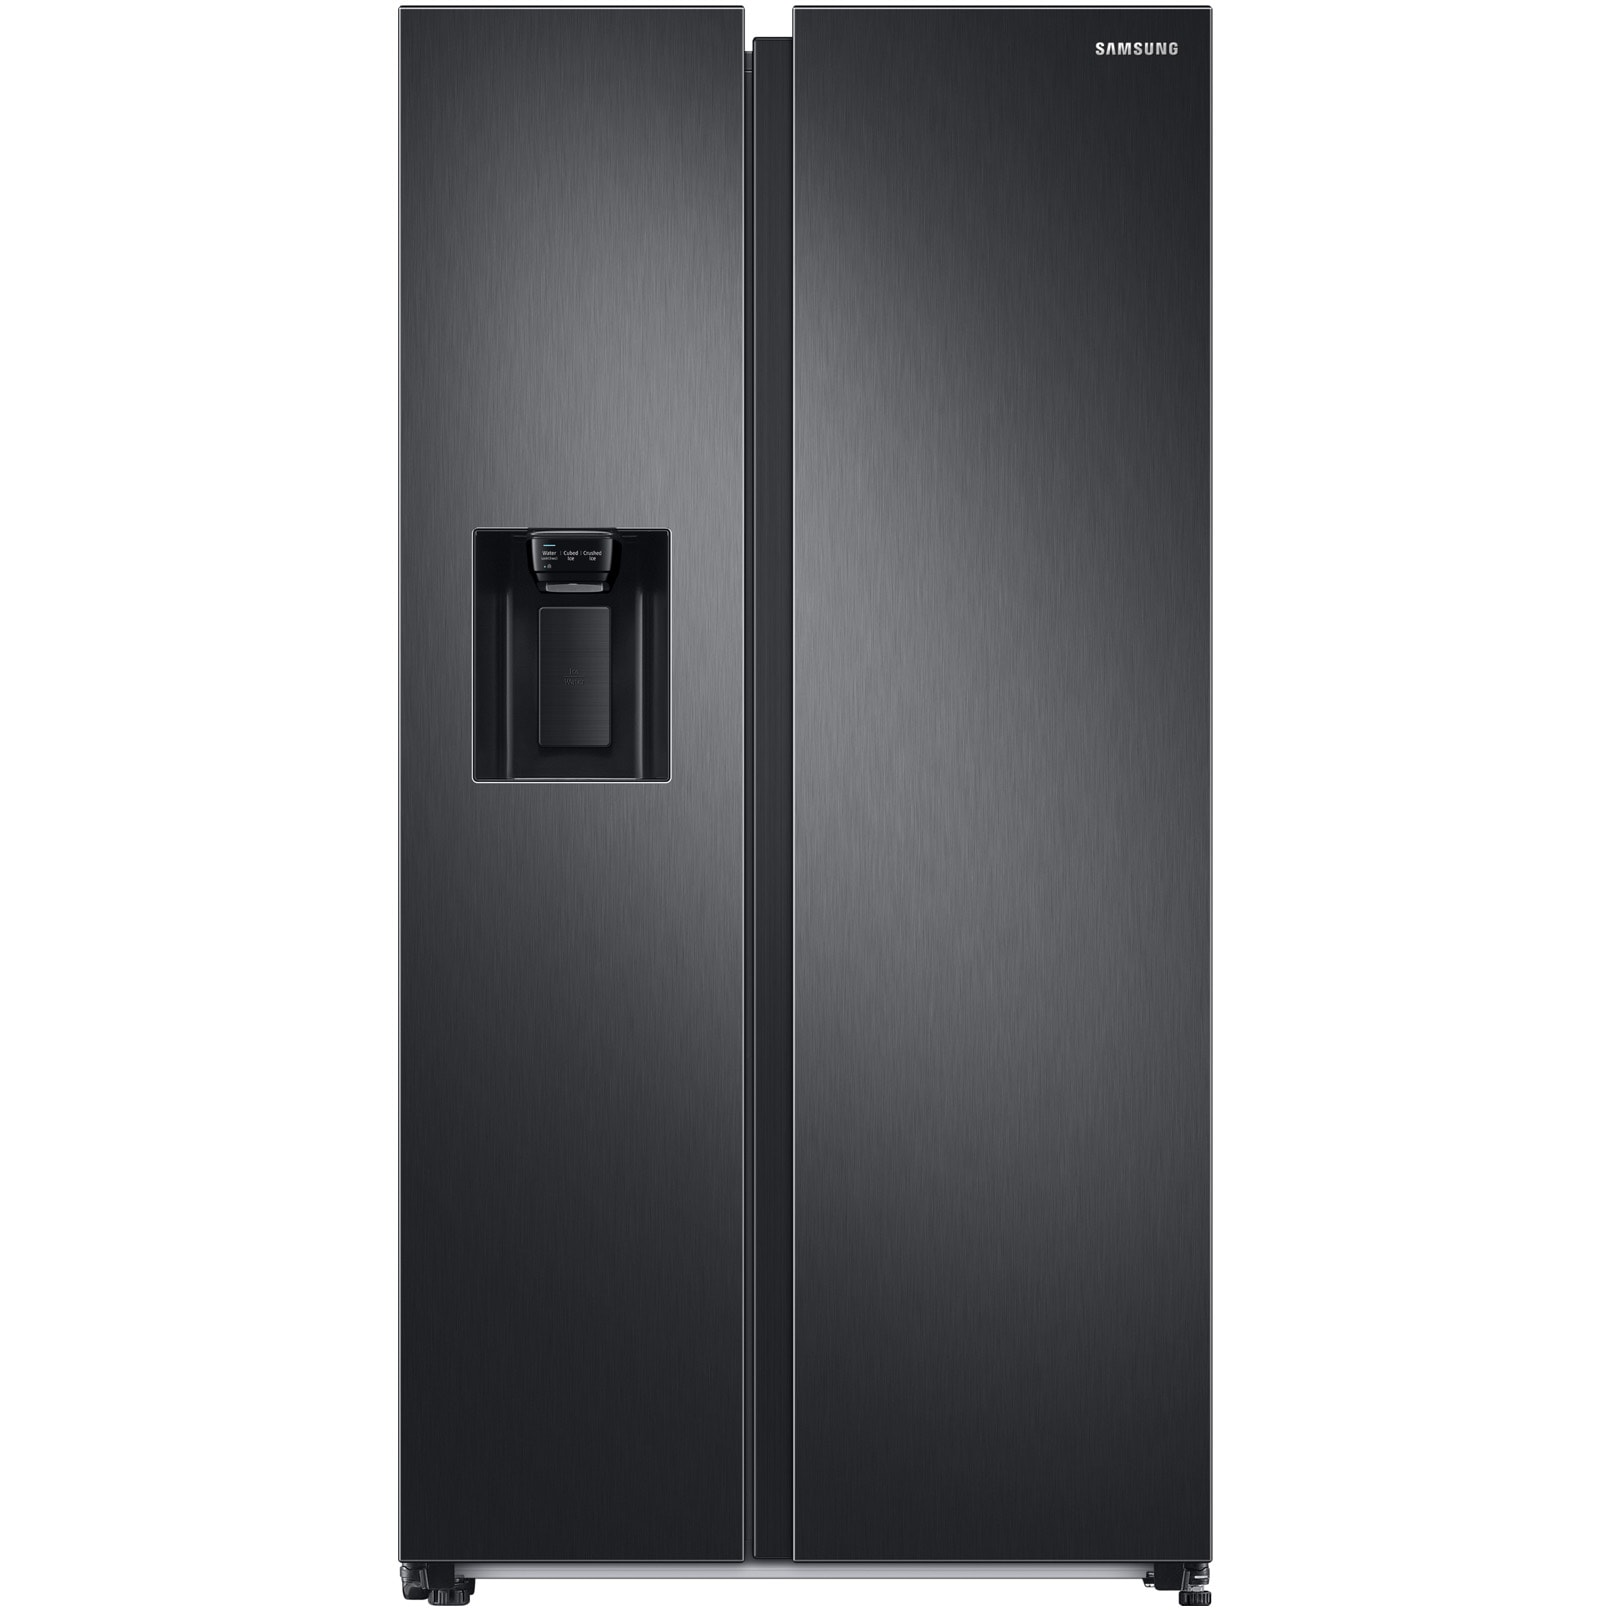 Fotografie Side By Side Samsung RS68A8842B1/EF, 609 l, Clasa D, Full No Frost, Twin Cooling Plus, Conversie Smart 5 in 1, Metal Cooling, Precise cooling, SpaceMax, Compresor Digital Inverter, Dozator apa, Antracit